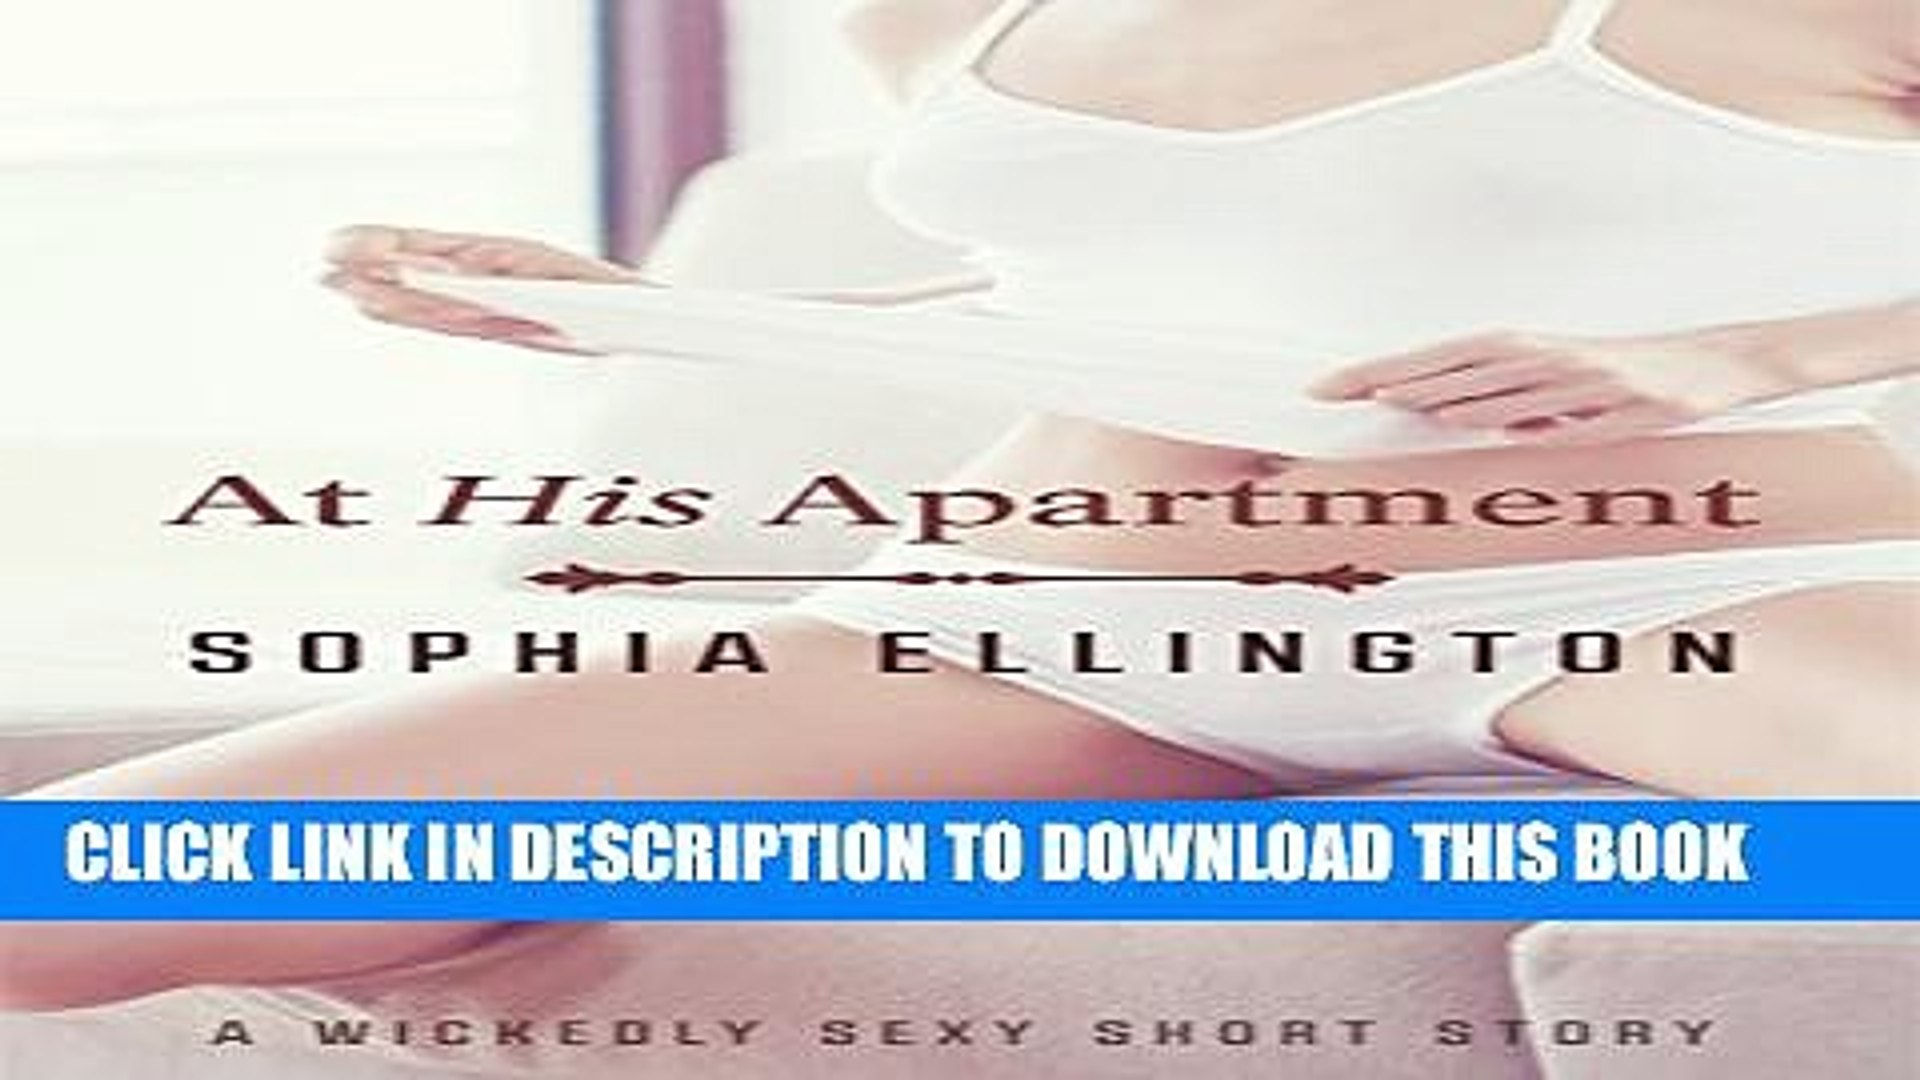 [PDF] At His Apartment: A Wickedly Sexy Short Story (The Wickedly Sexy Short Story collection Book